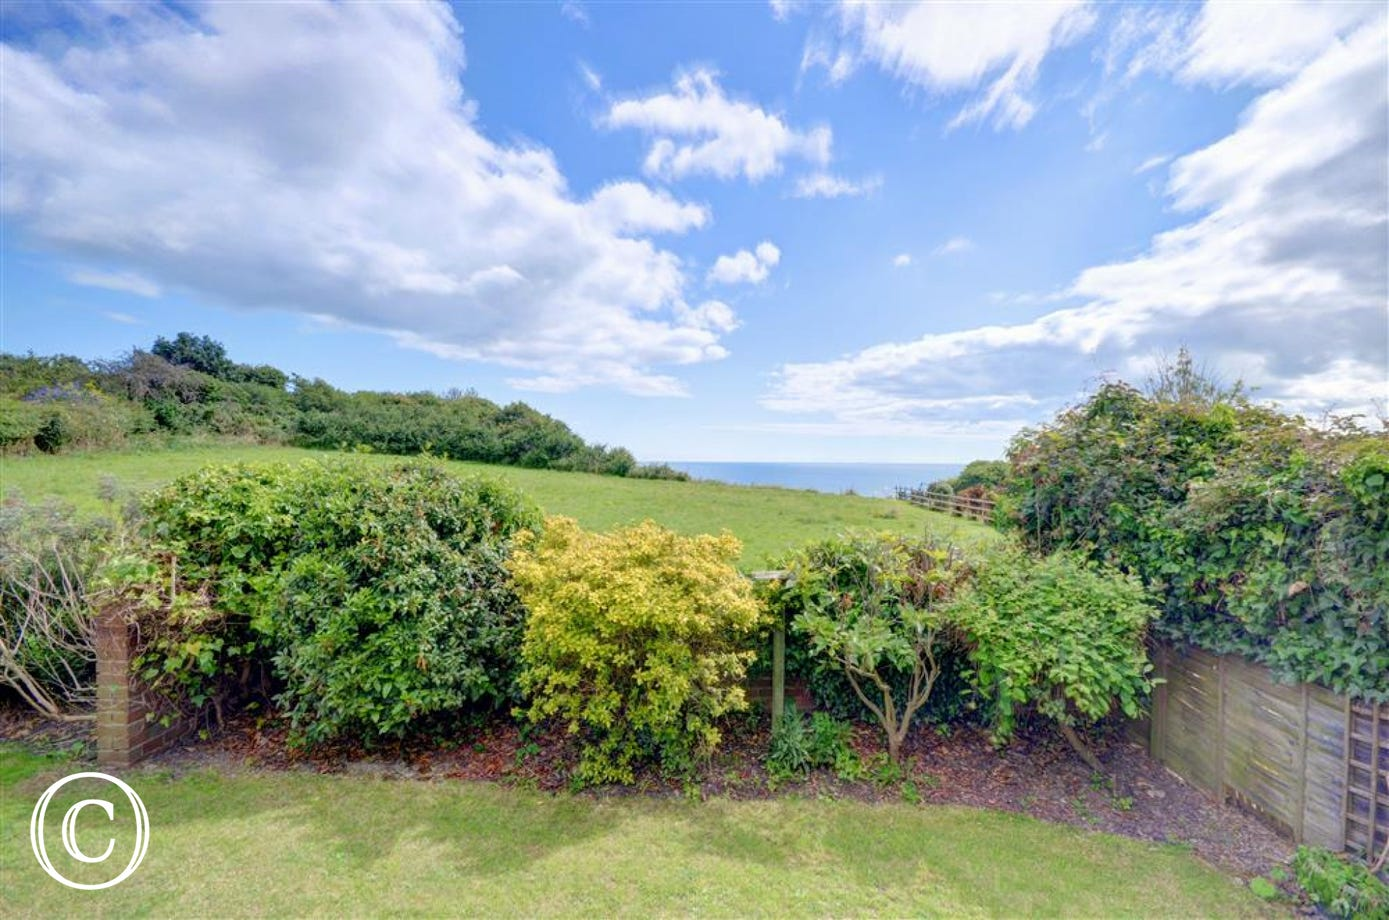 The property has stunning views towards the sea.